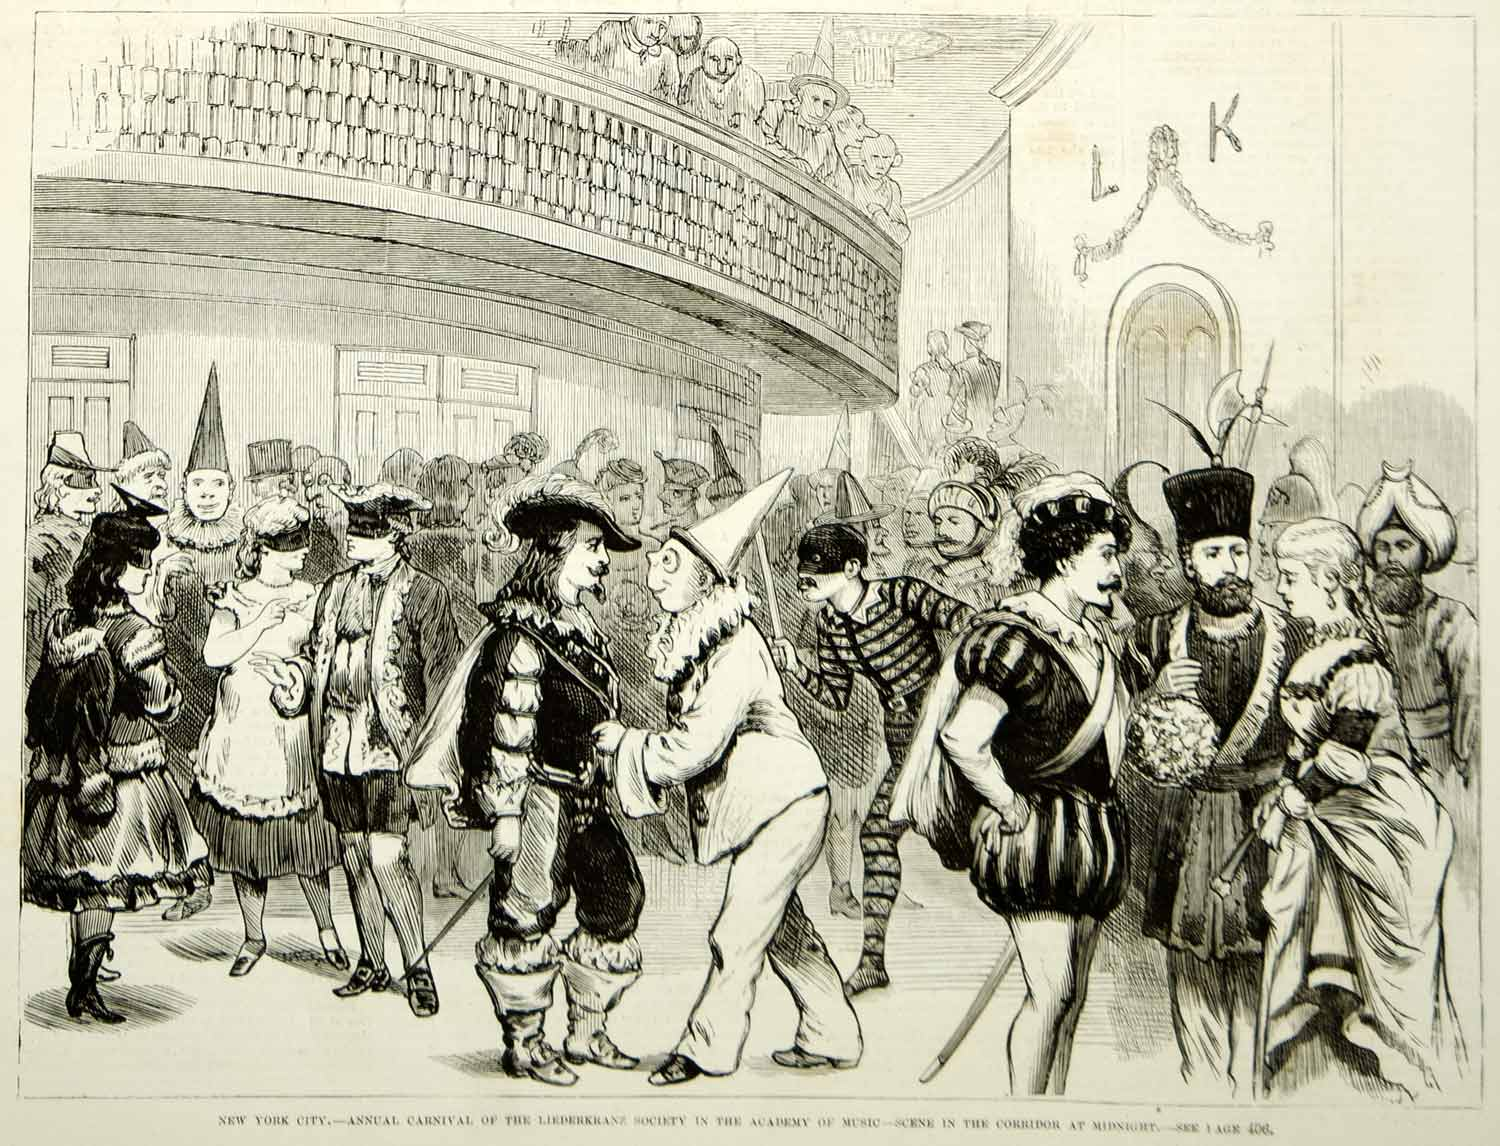 1875 Wood Engraving Liederkranz Society Carnival Masquerade Party NYC Costumes